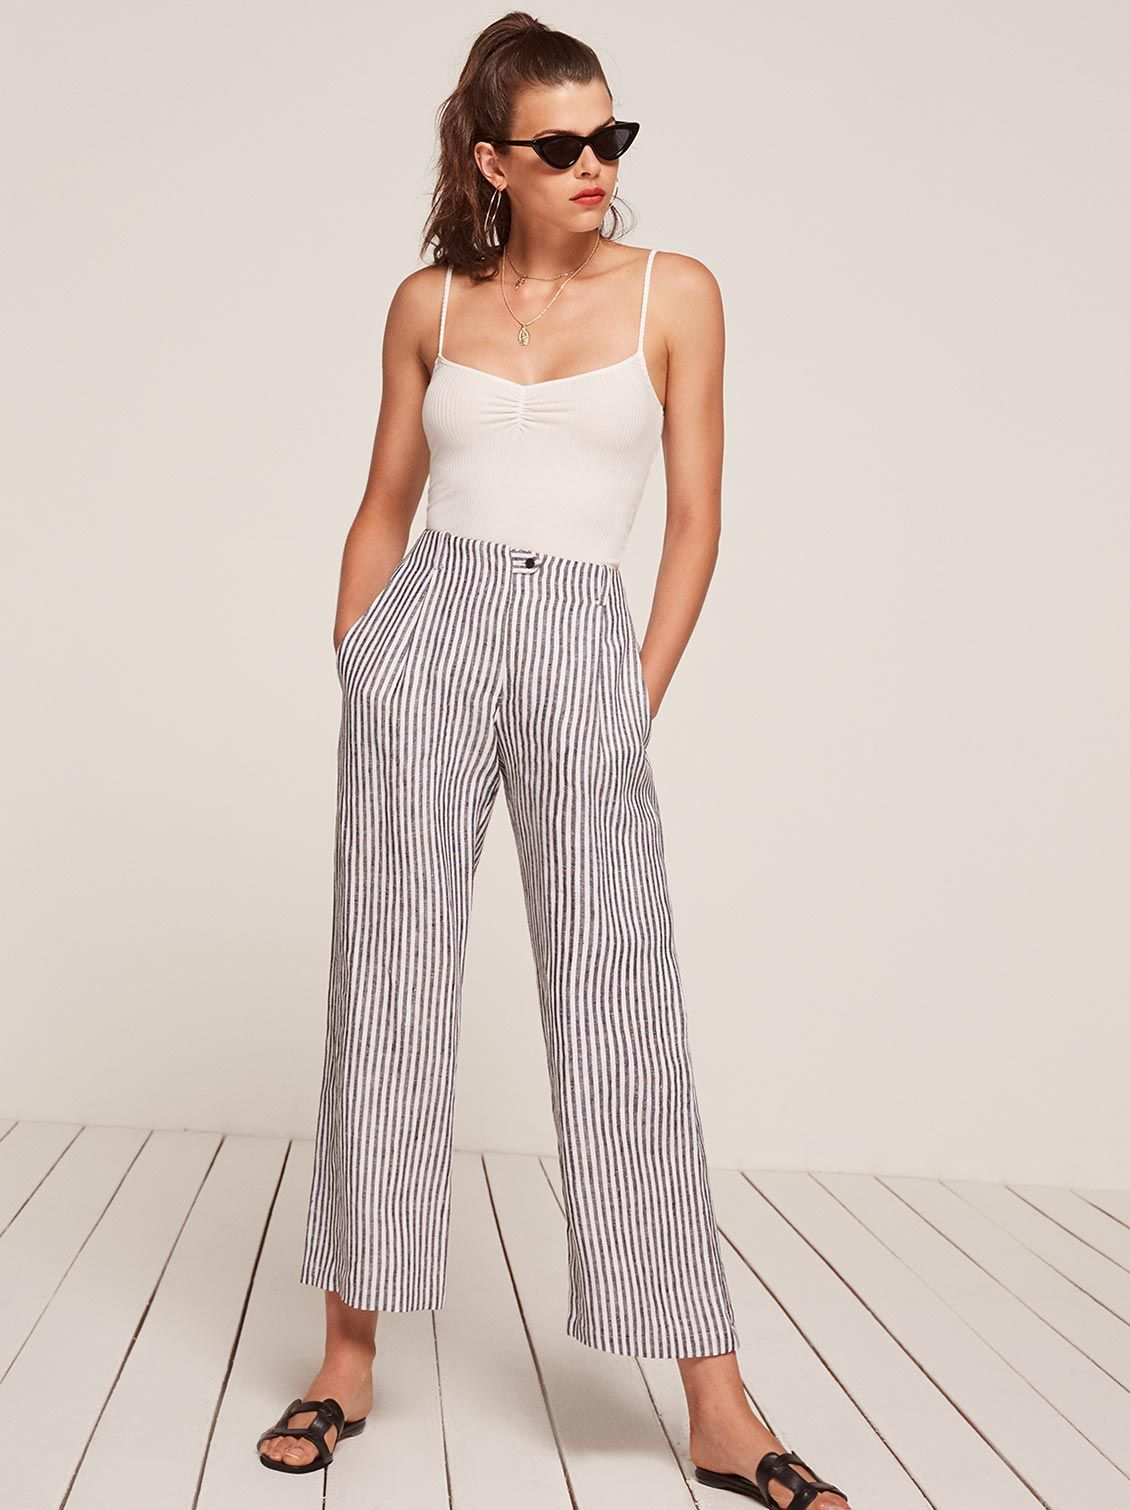 578b8fdd Cruise Pant | Keeping Up Appearances | Fashion, Fashion outfits ...